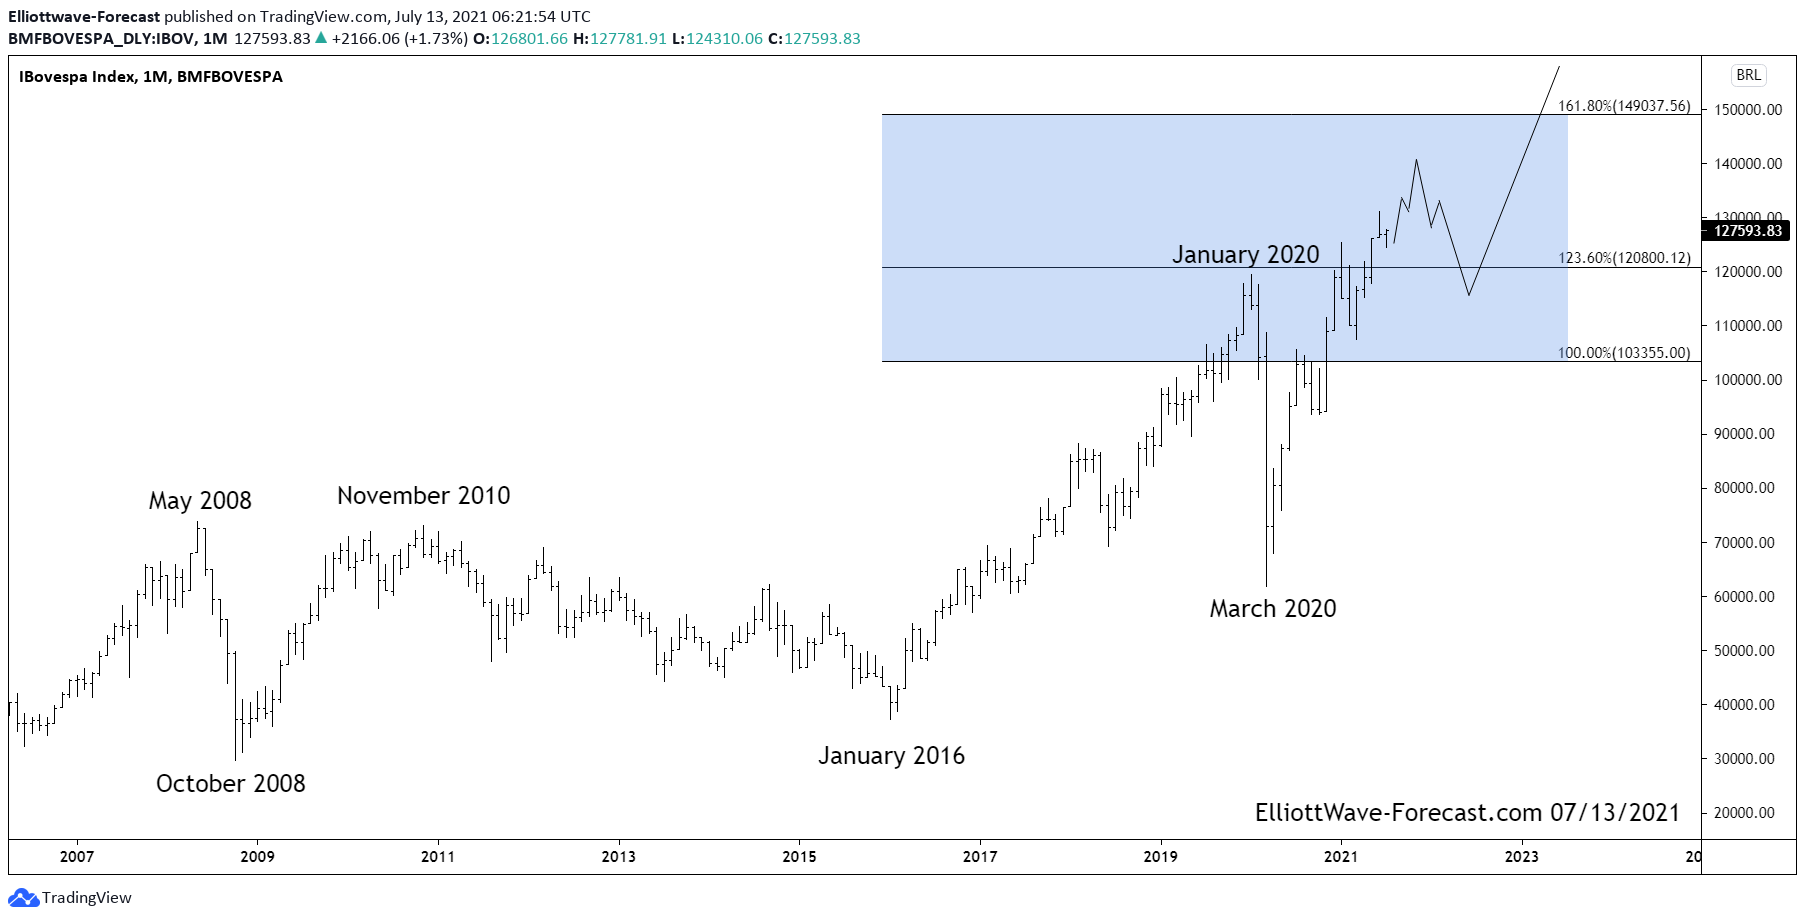 The Brazilian Bovespa Index Long Term Bullish Trend and Cycles